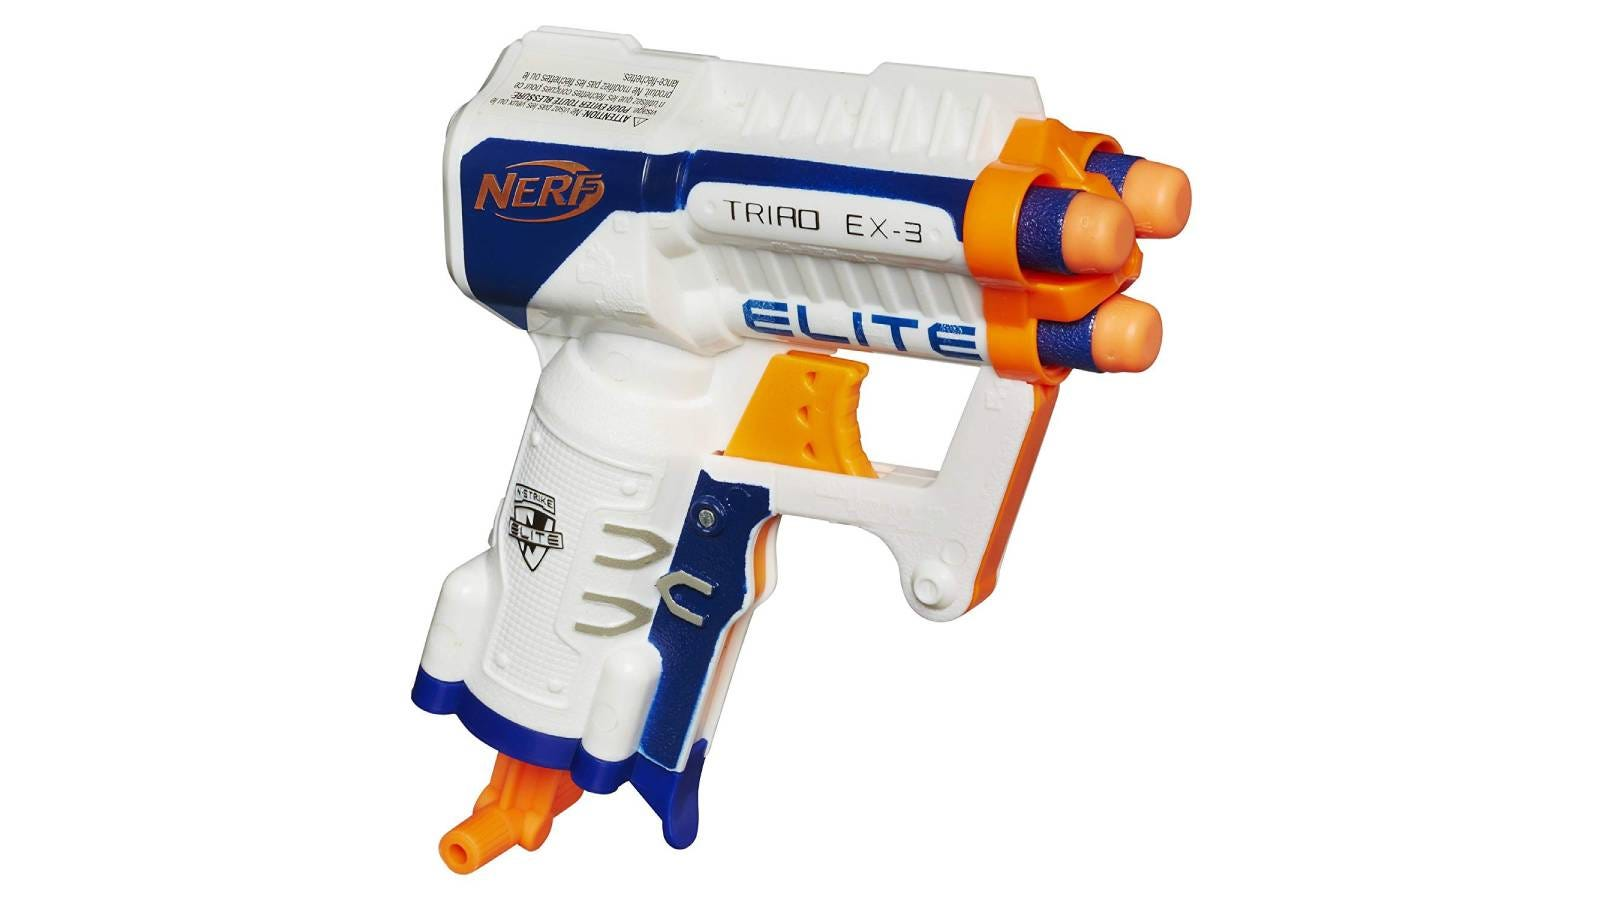 The NERF N-Strike Elite Triad EX-3 toy gun.